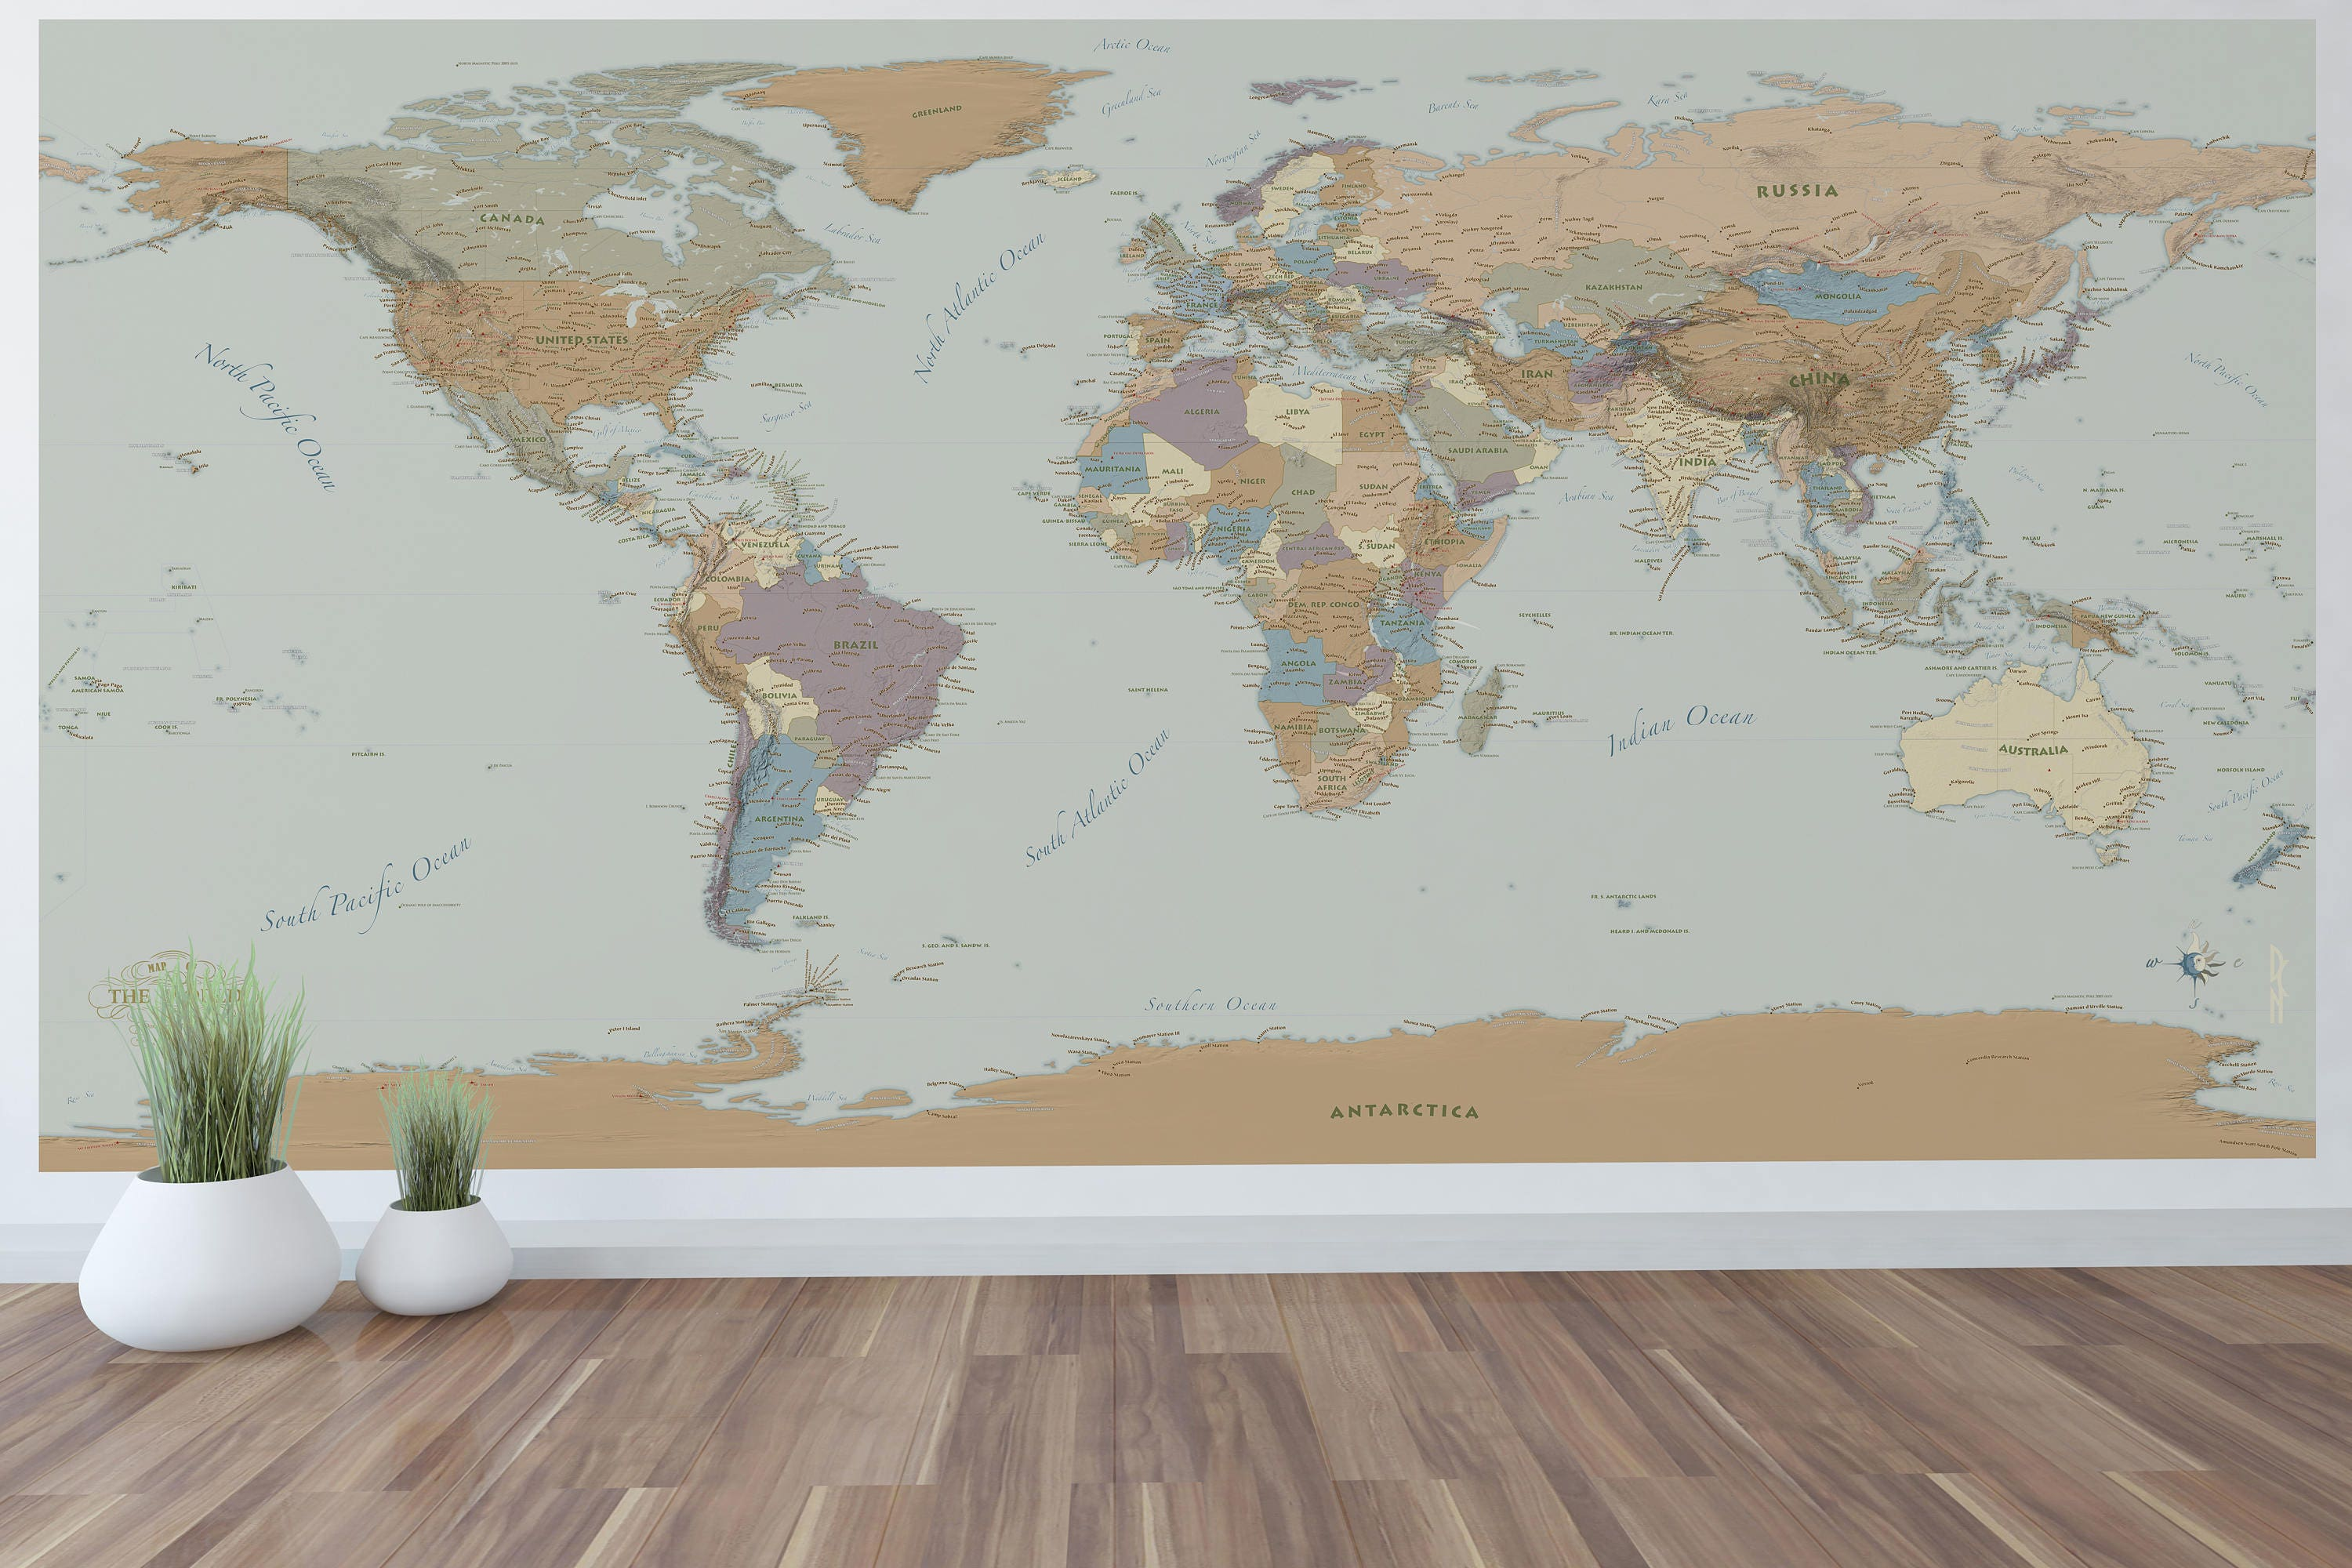 Giant world map mural wall art world map decal zoom sciox Gallery